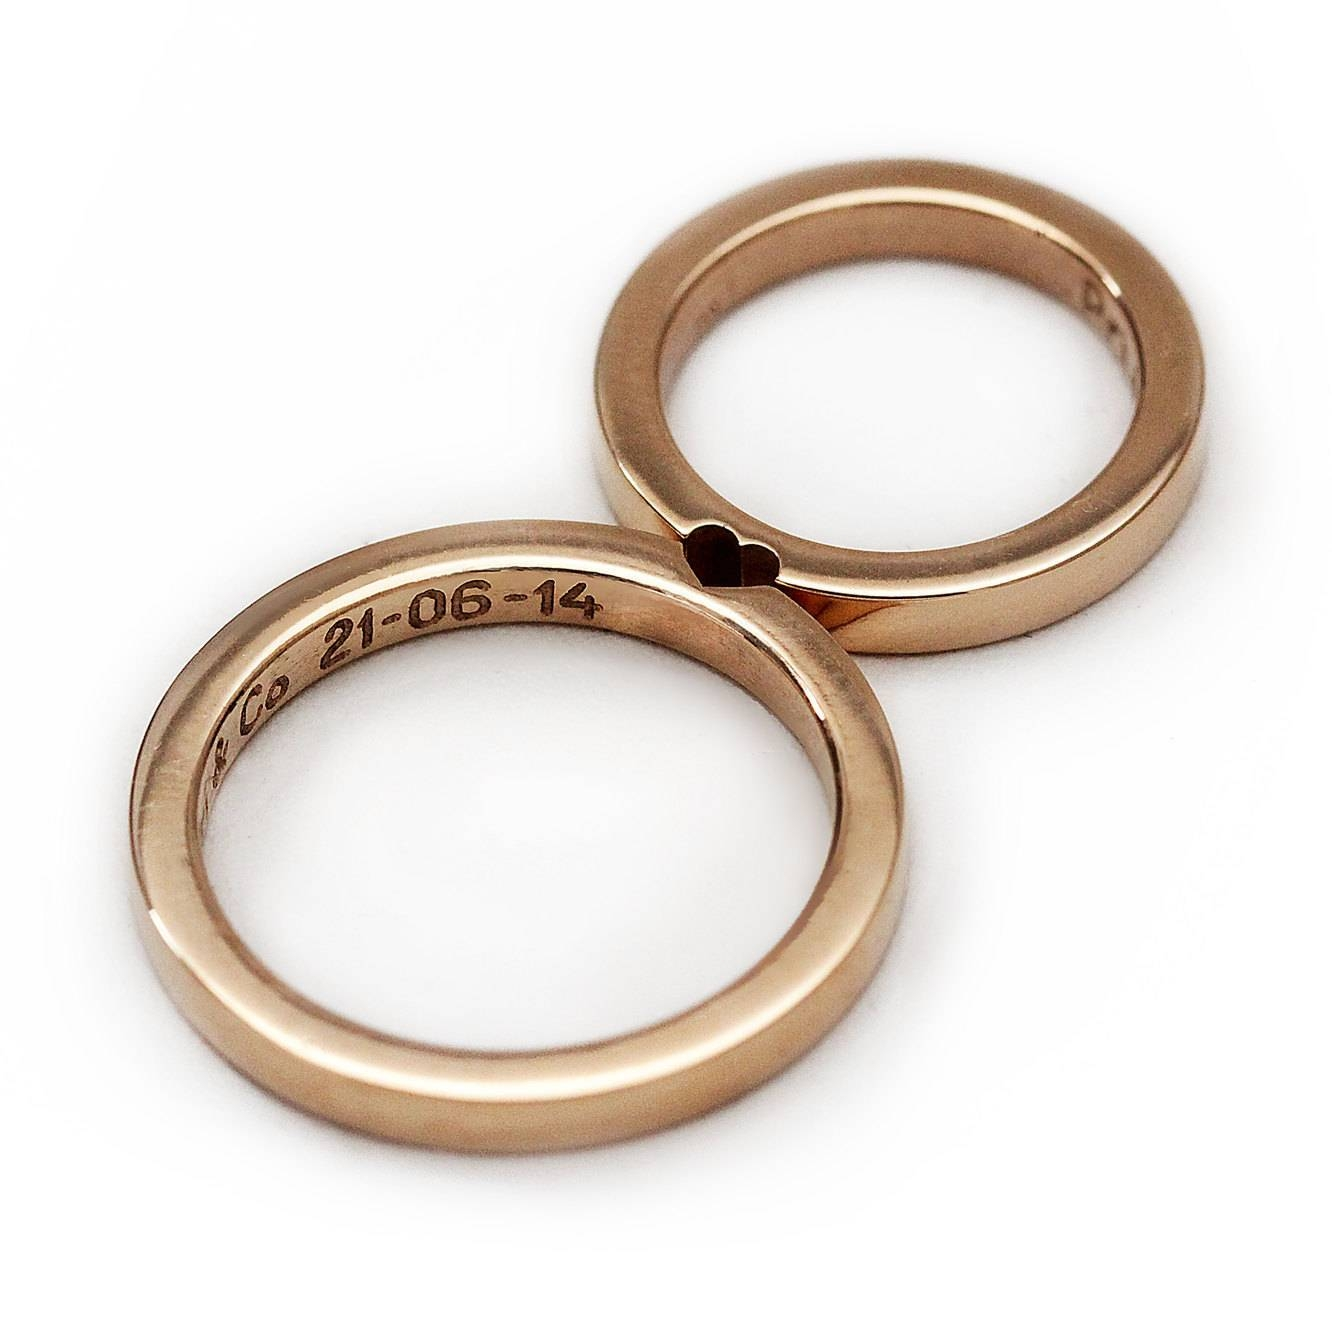 Unique Couple Ring Set Initials Ring Set Rose Gold Wedding For Couple Rose Gold Wedding Bands (View 14 of 15)